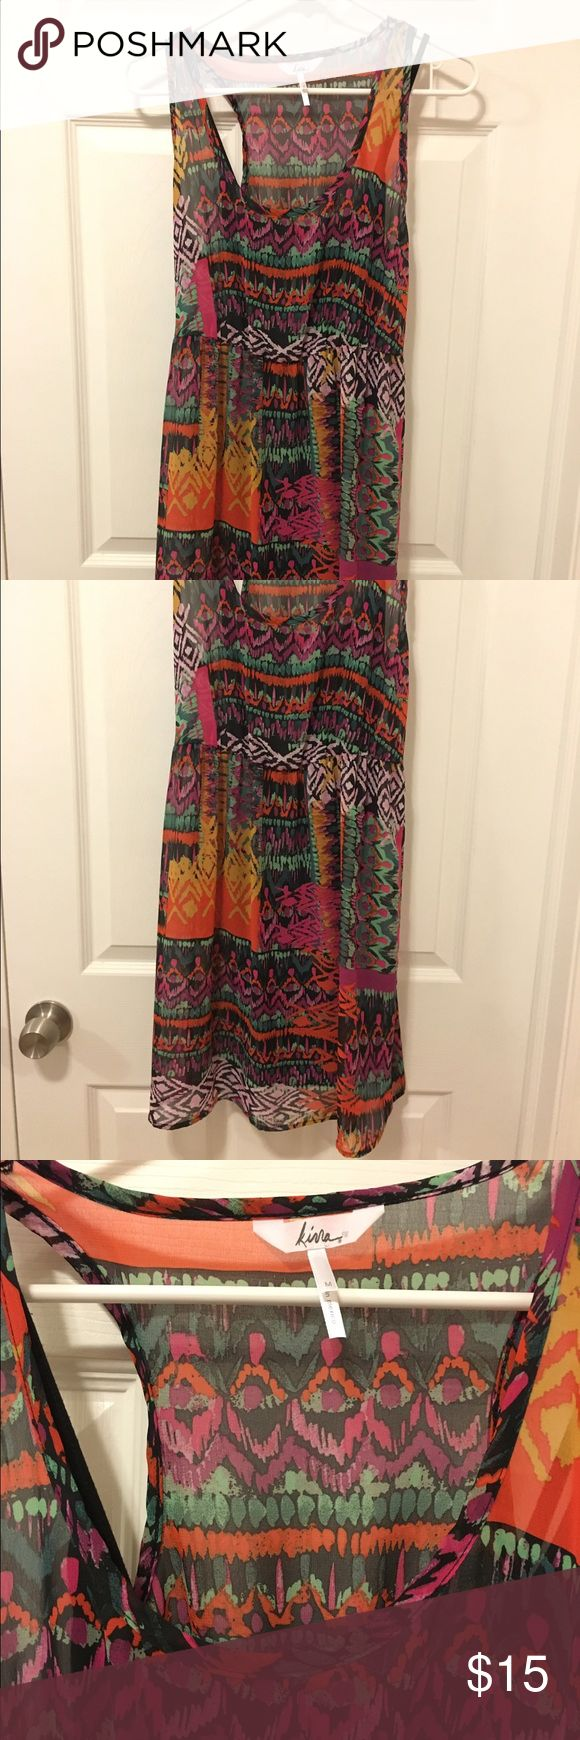 Aztec short dress Kirra from PacSun orange, purple, green Aztec design printed tank dress that reaches just above the knee. Includes a black slip underneath. Pairs great with the black belt in my listings! Great for a casual summers day! Only worn twice. Kirra Dresses Midi